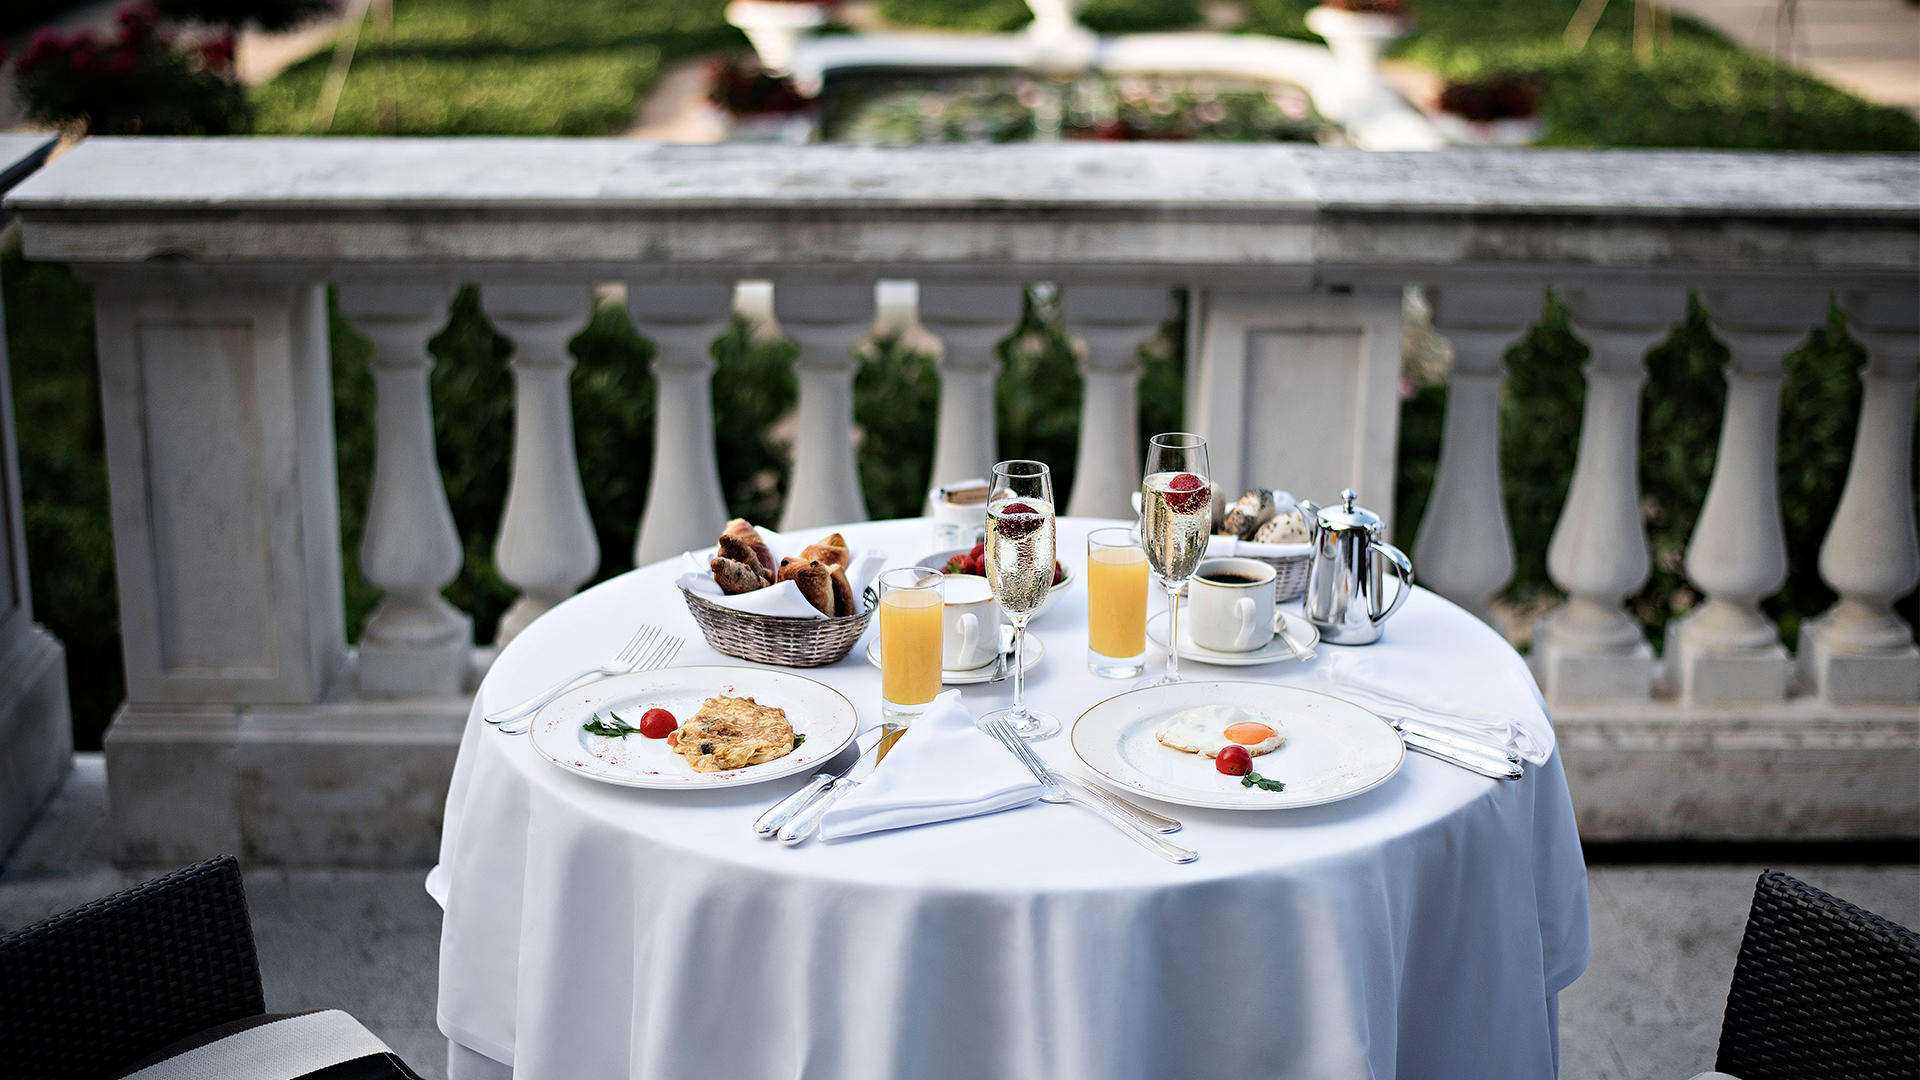 Breakfast on the terrace Kempinski Palace Portoroz Istria Slovenia